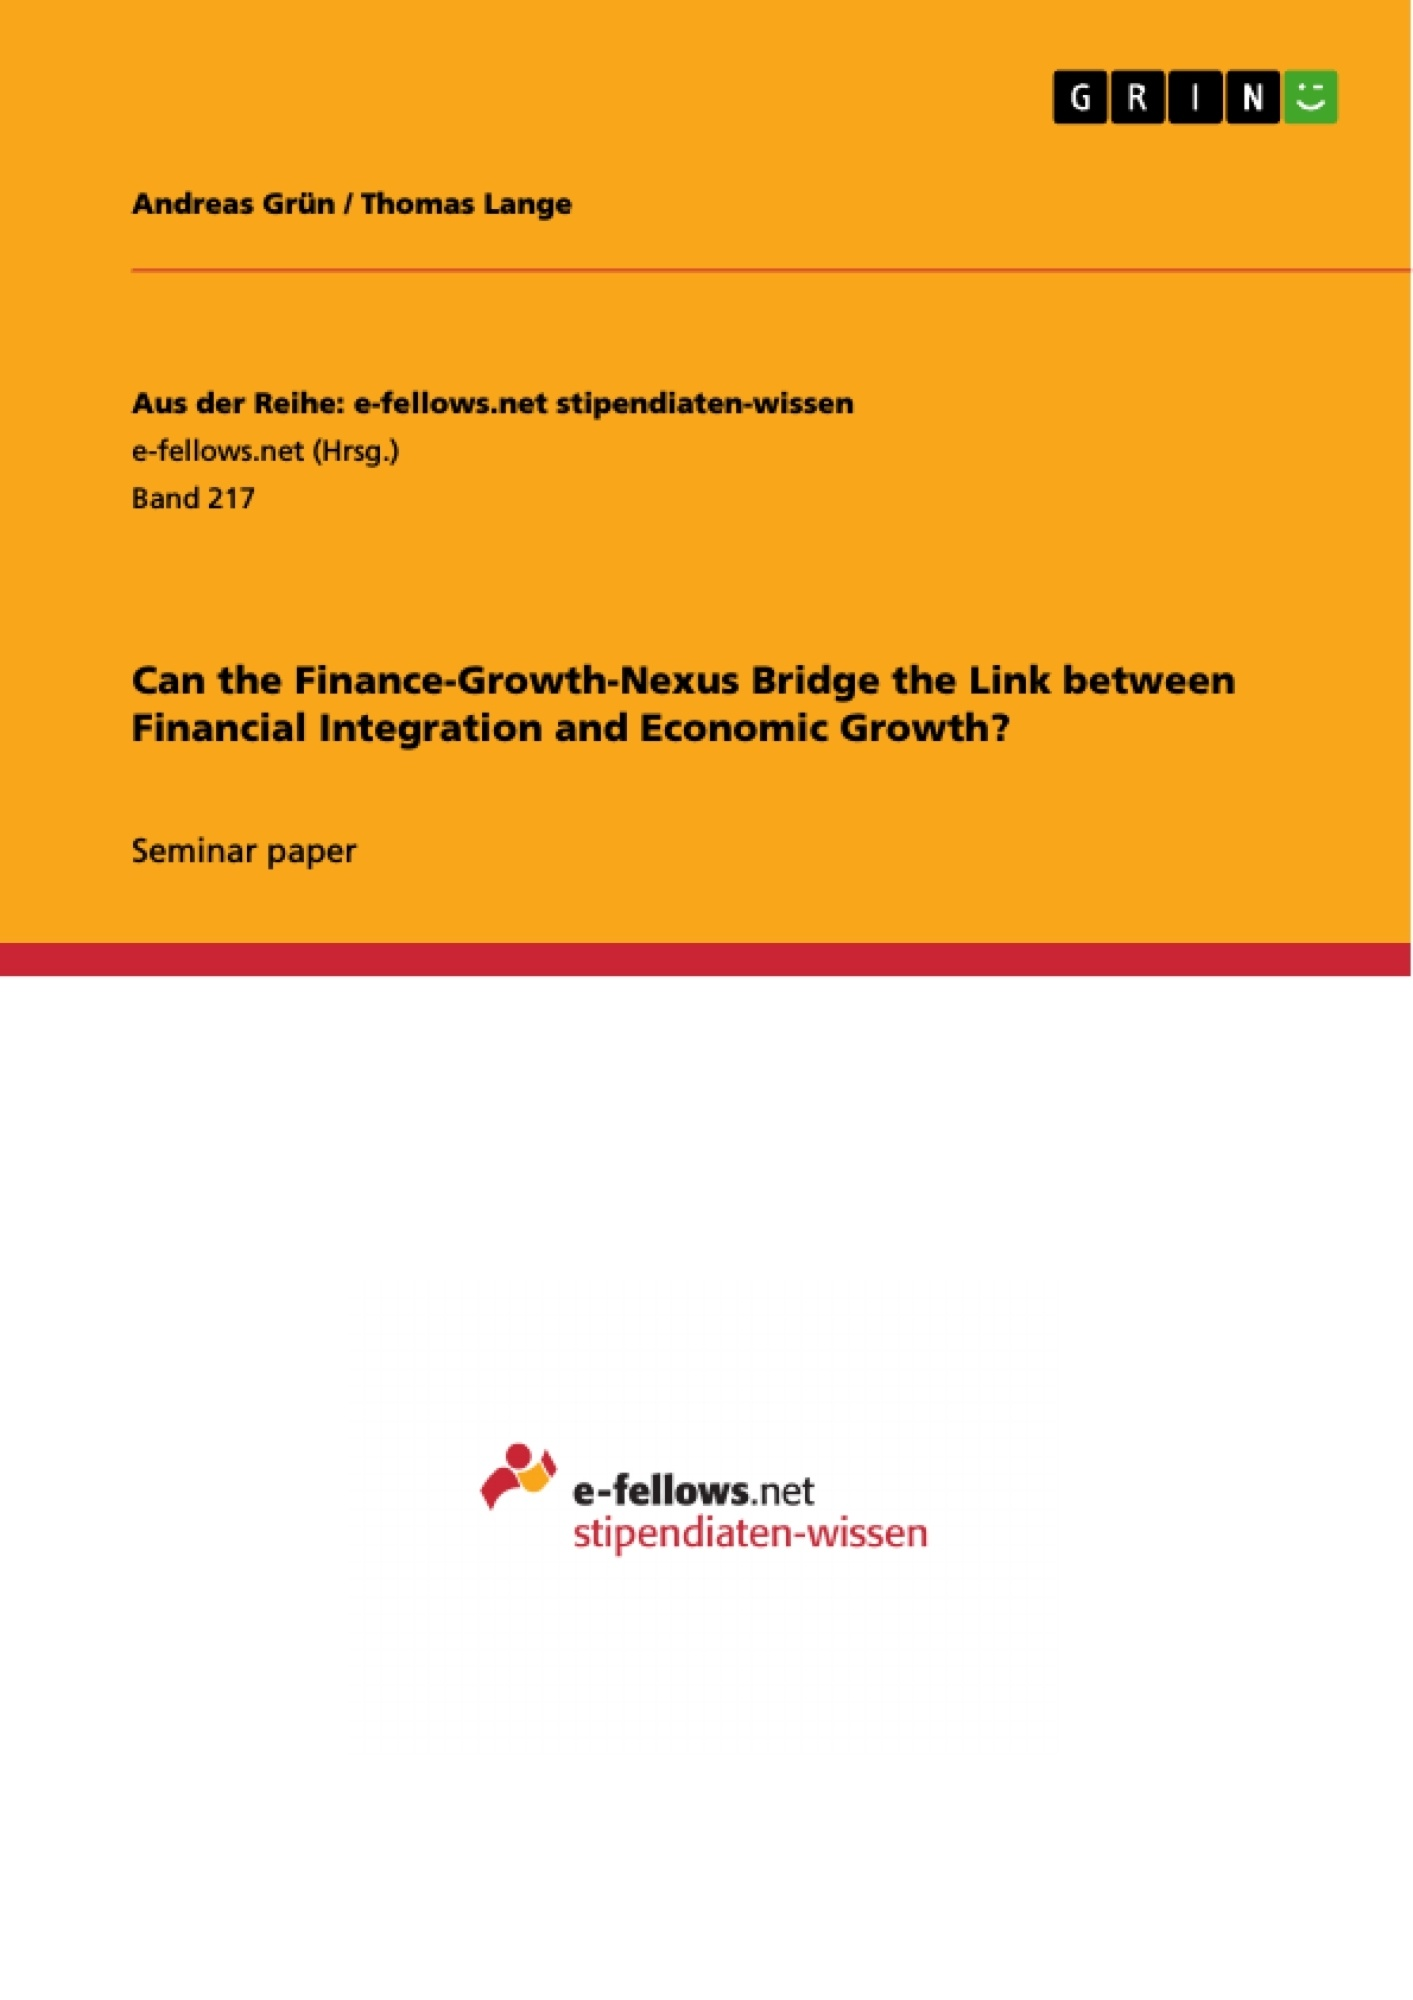 Title: Can the Finance-Growth-Nexus Bridge the Link between Financial Integration and Economic Growth?